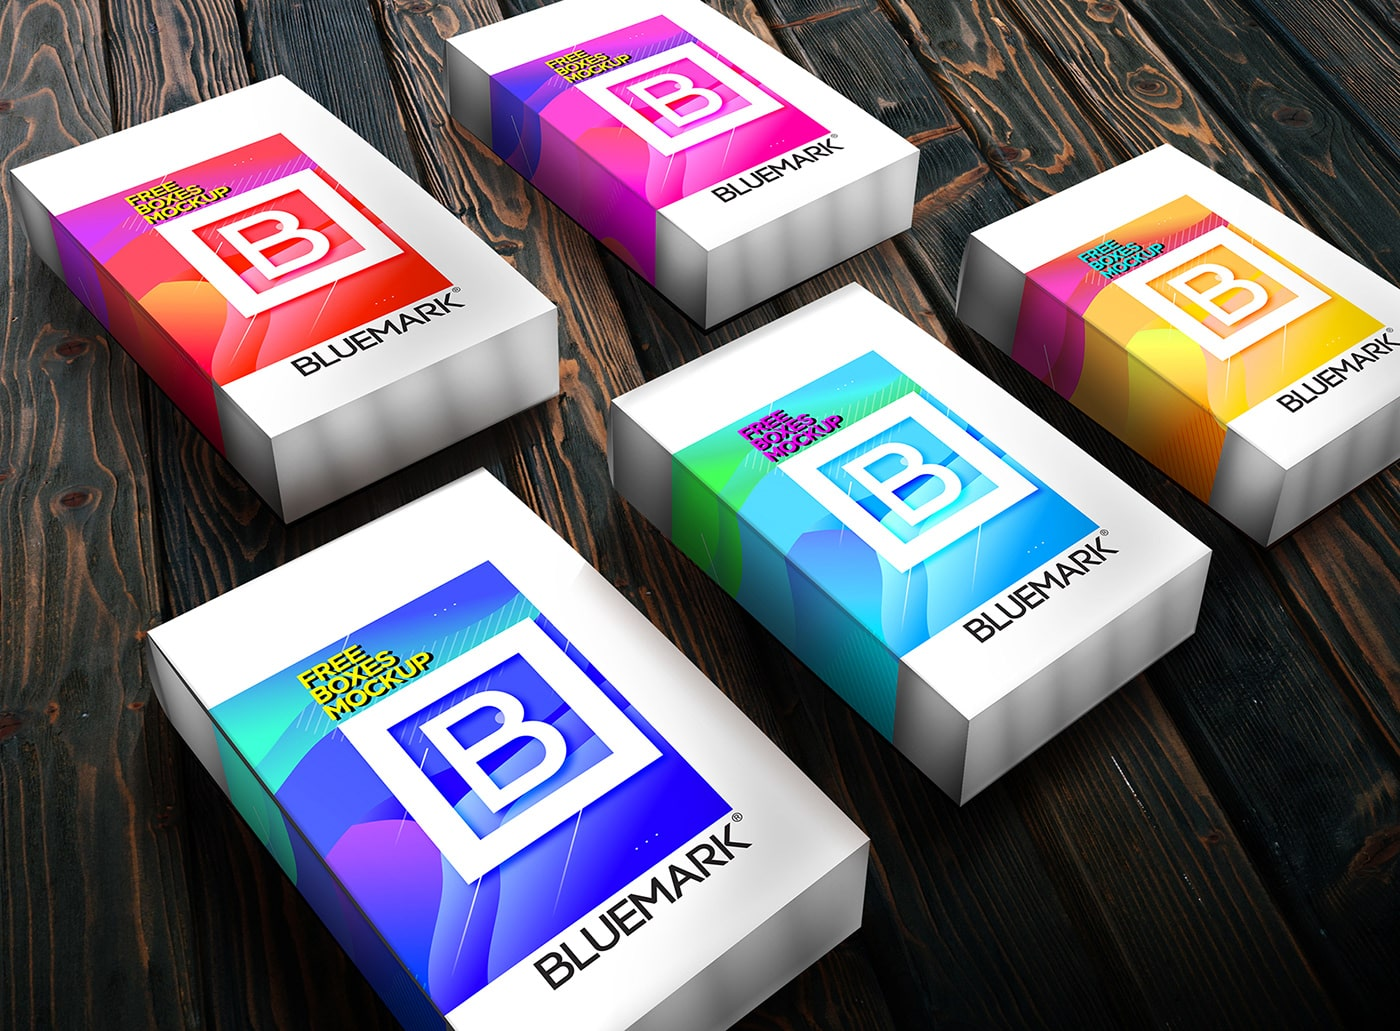 Free Product Boxes Mockup